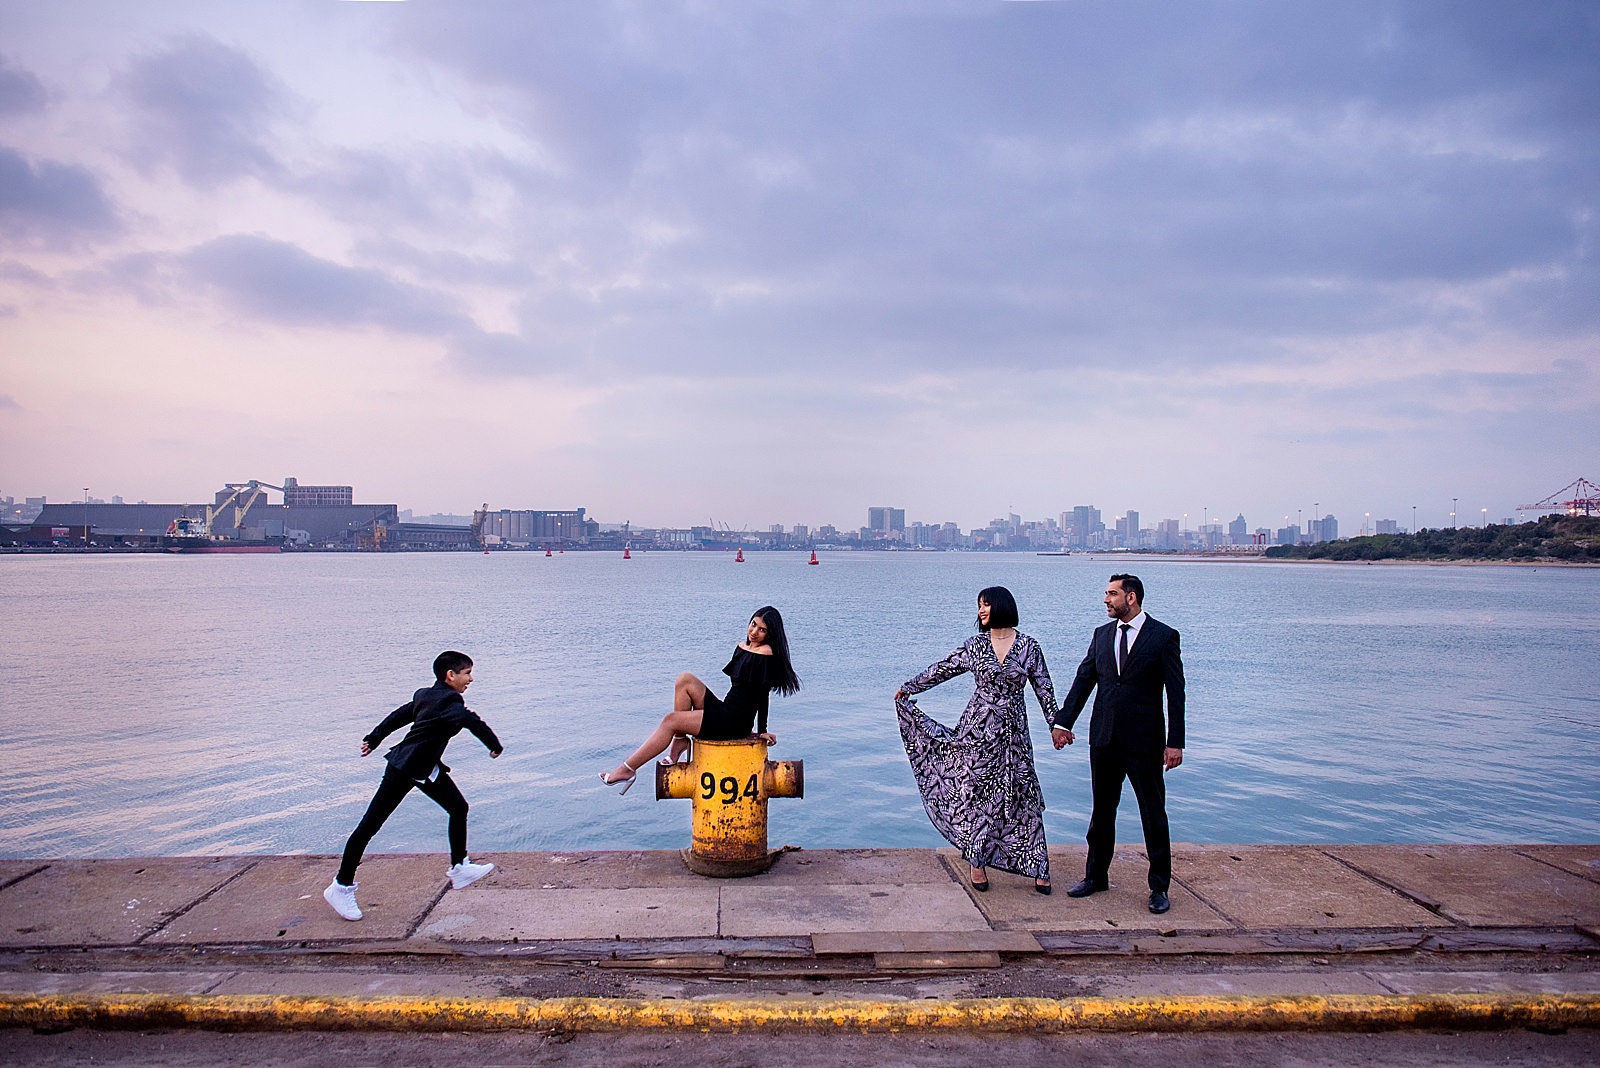 Creative, stylish family shoot shot in Durban Shipyard by Top South African photographer Jacki Bruniquel.